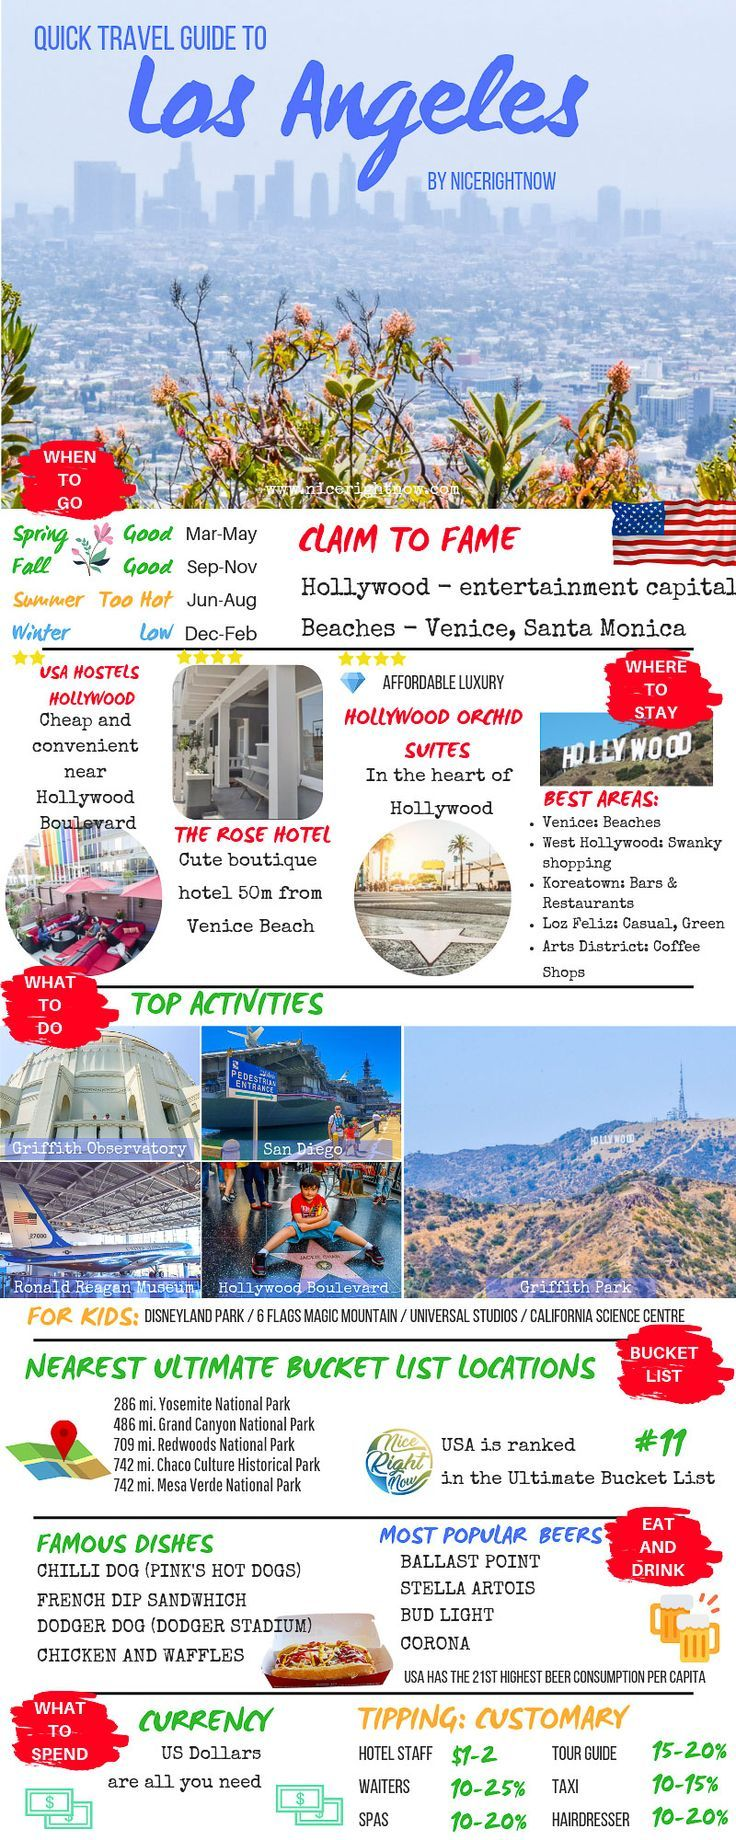 Quick Travel Guide To Los Angeles With Images Quick Travel Travel Guide Travel Infographic